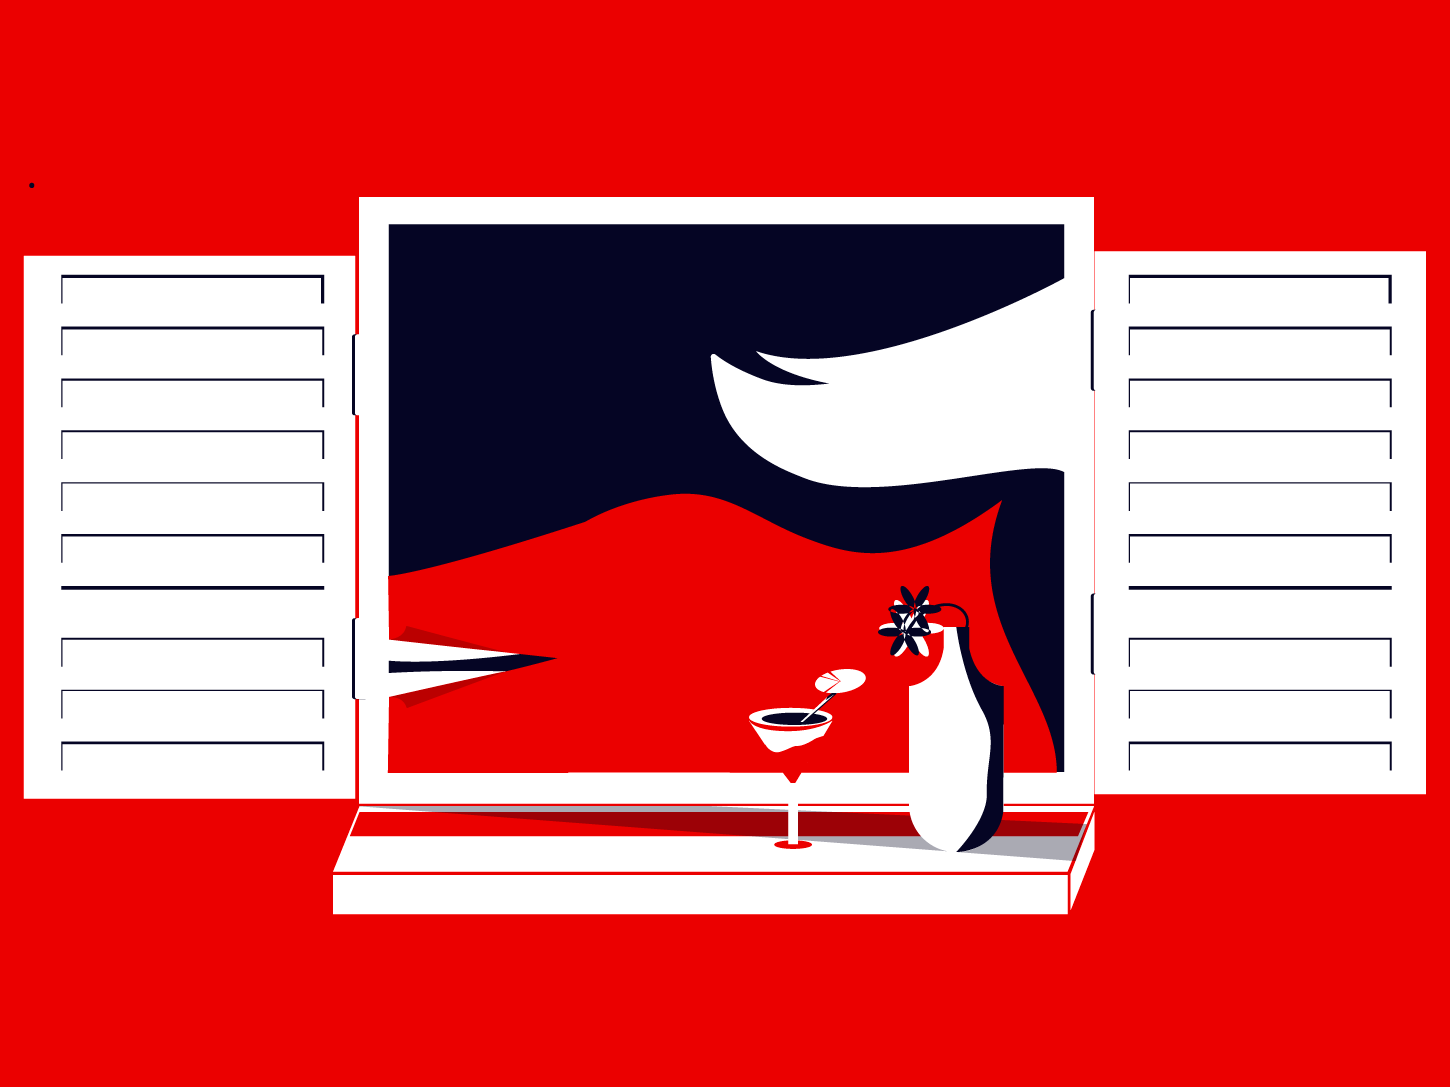 Just Women red and blue illustrator design women negative space graphic illustration